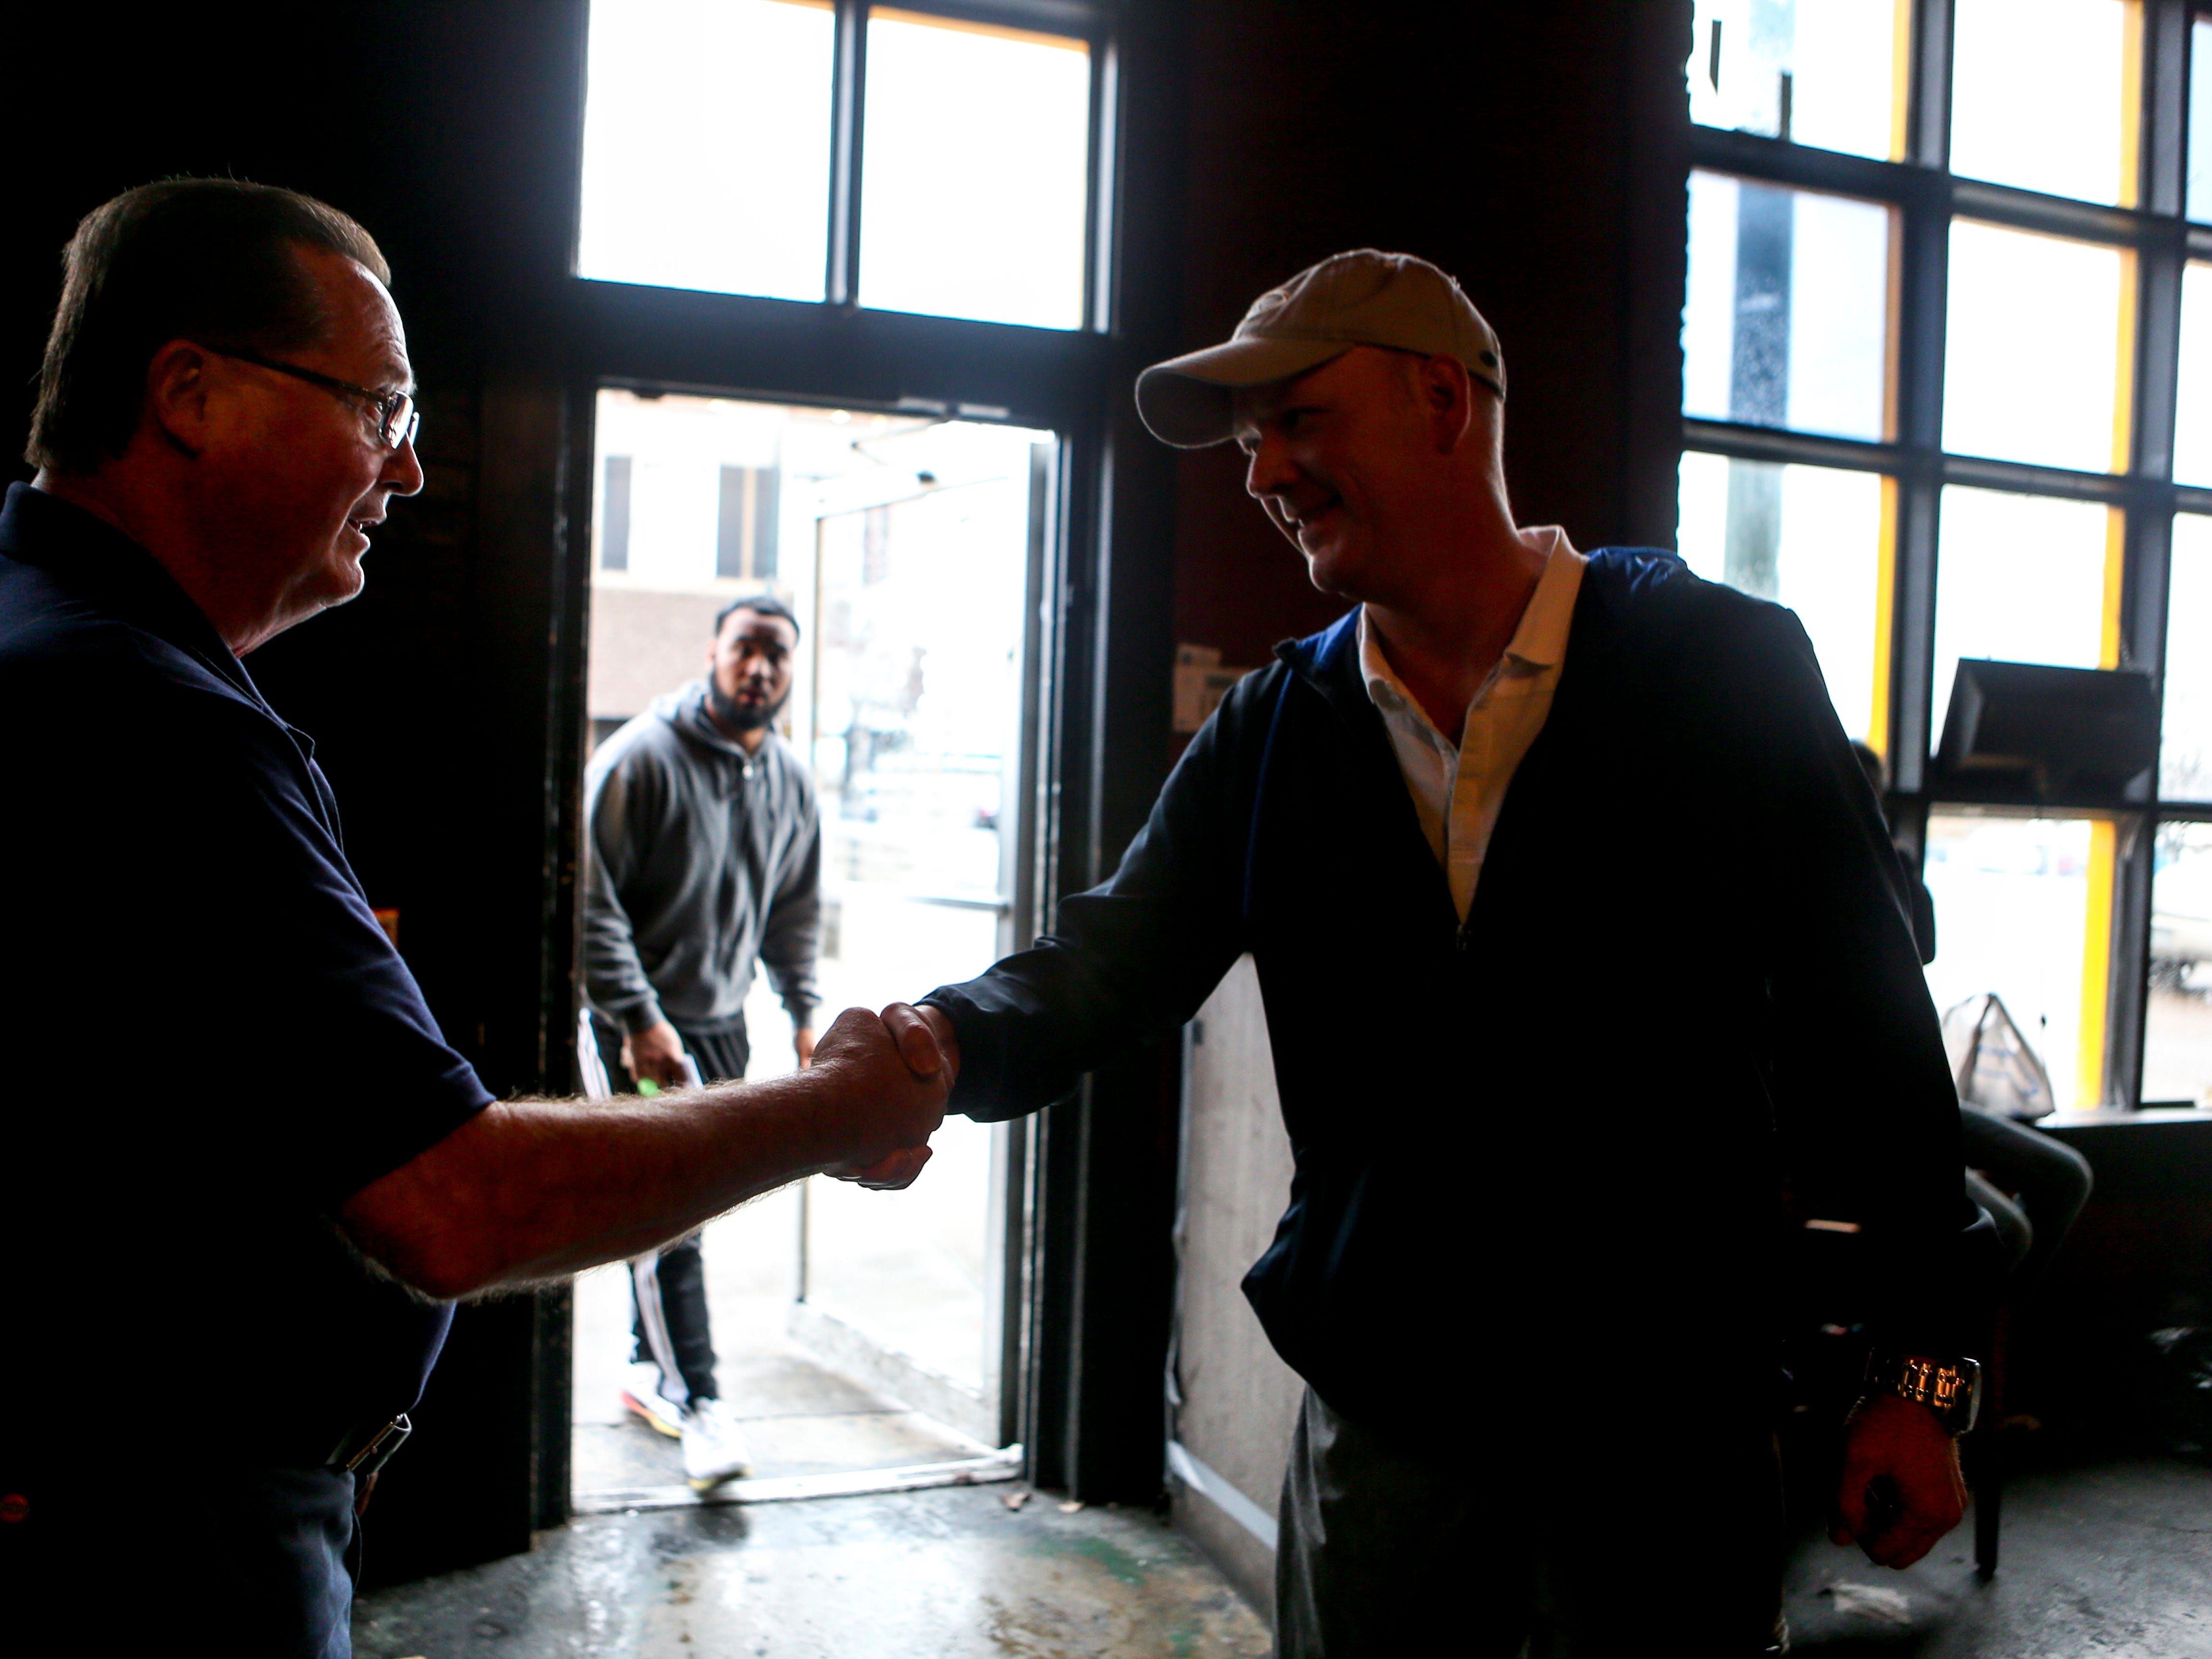 Steve Mooney, left, and Drew Baker, right, shake hands after Mooney presented Baker with a new set of keys for the location that previously housed West Alley BBQ in Jackson, Tenn., on Friday, Nov. 30, 2018.